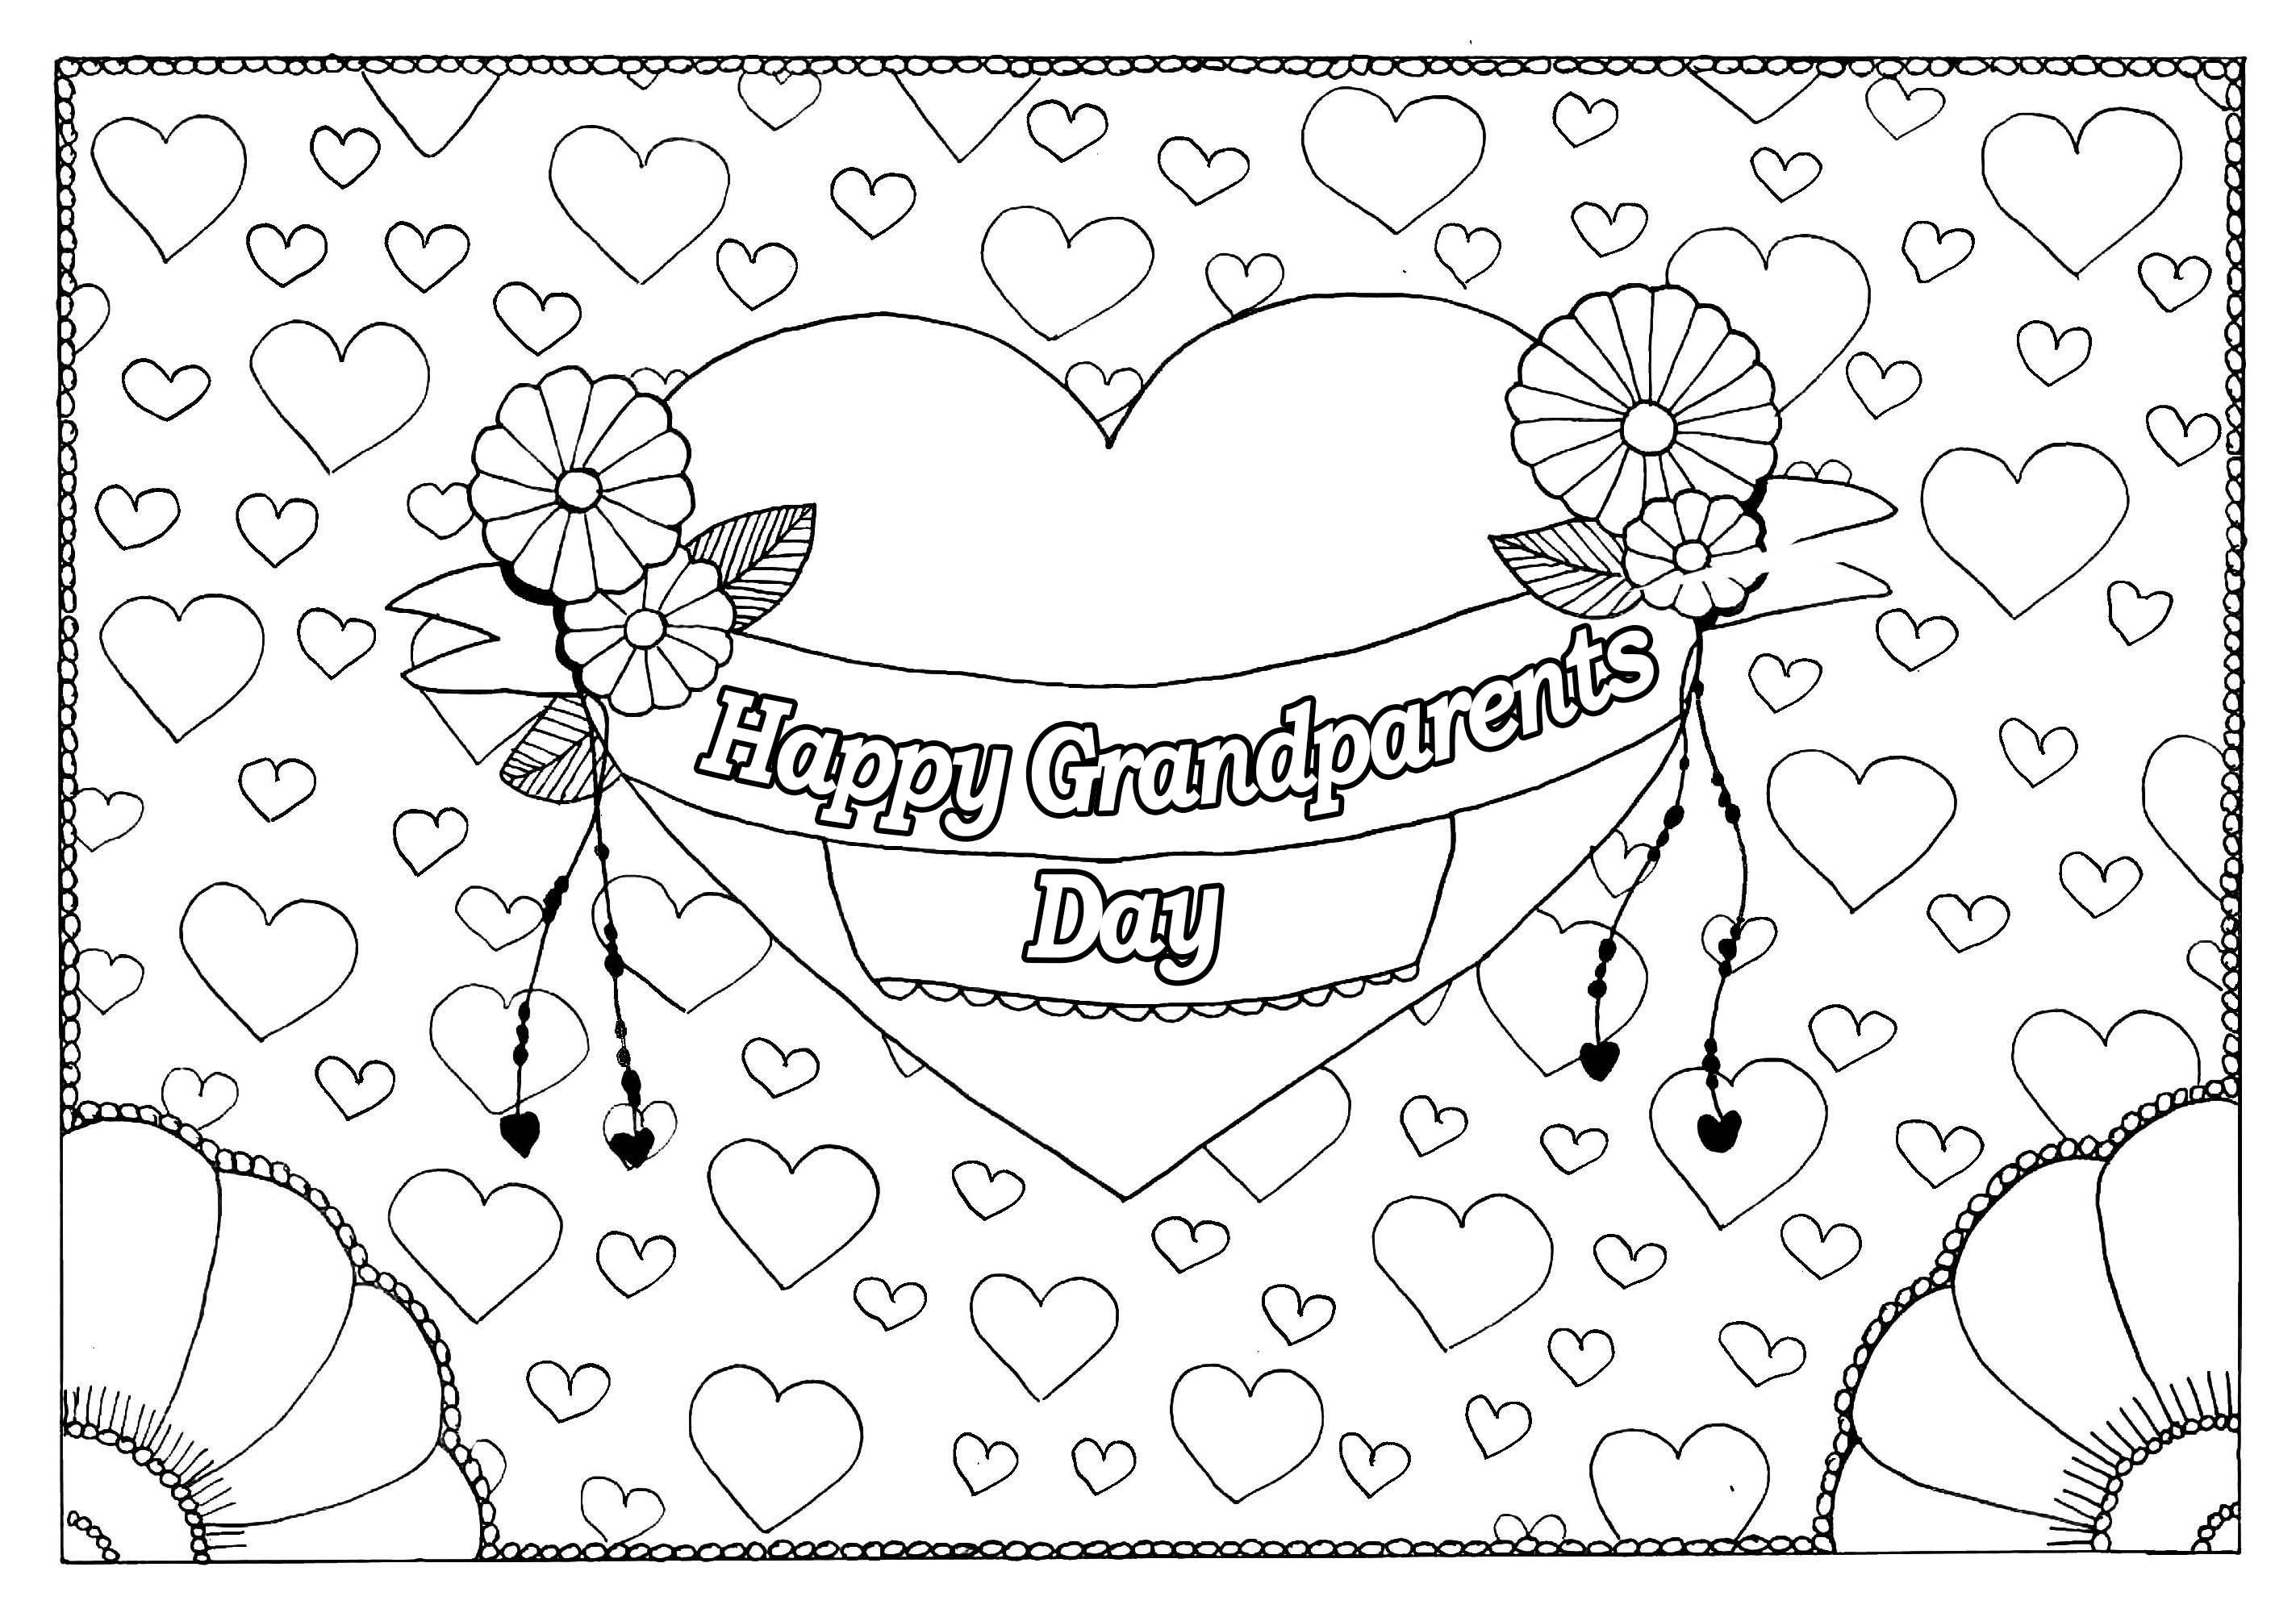 grandparents day coloring pages Collection-Love My Grandparents Day Coloring Pages 8-r